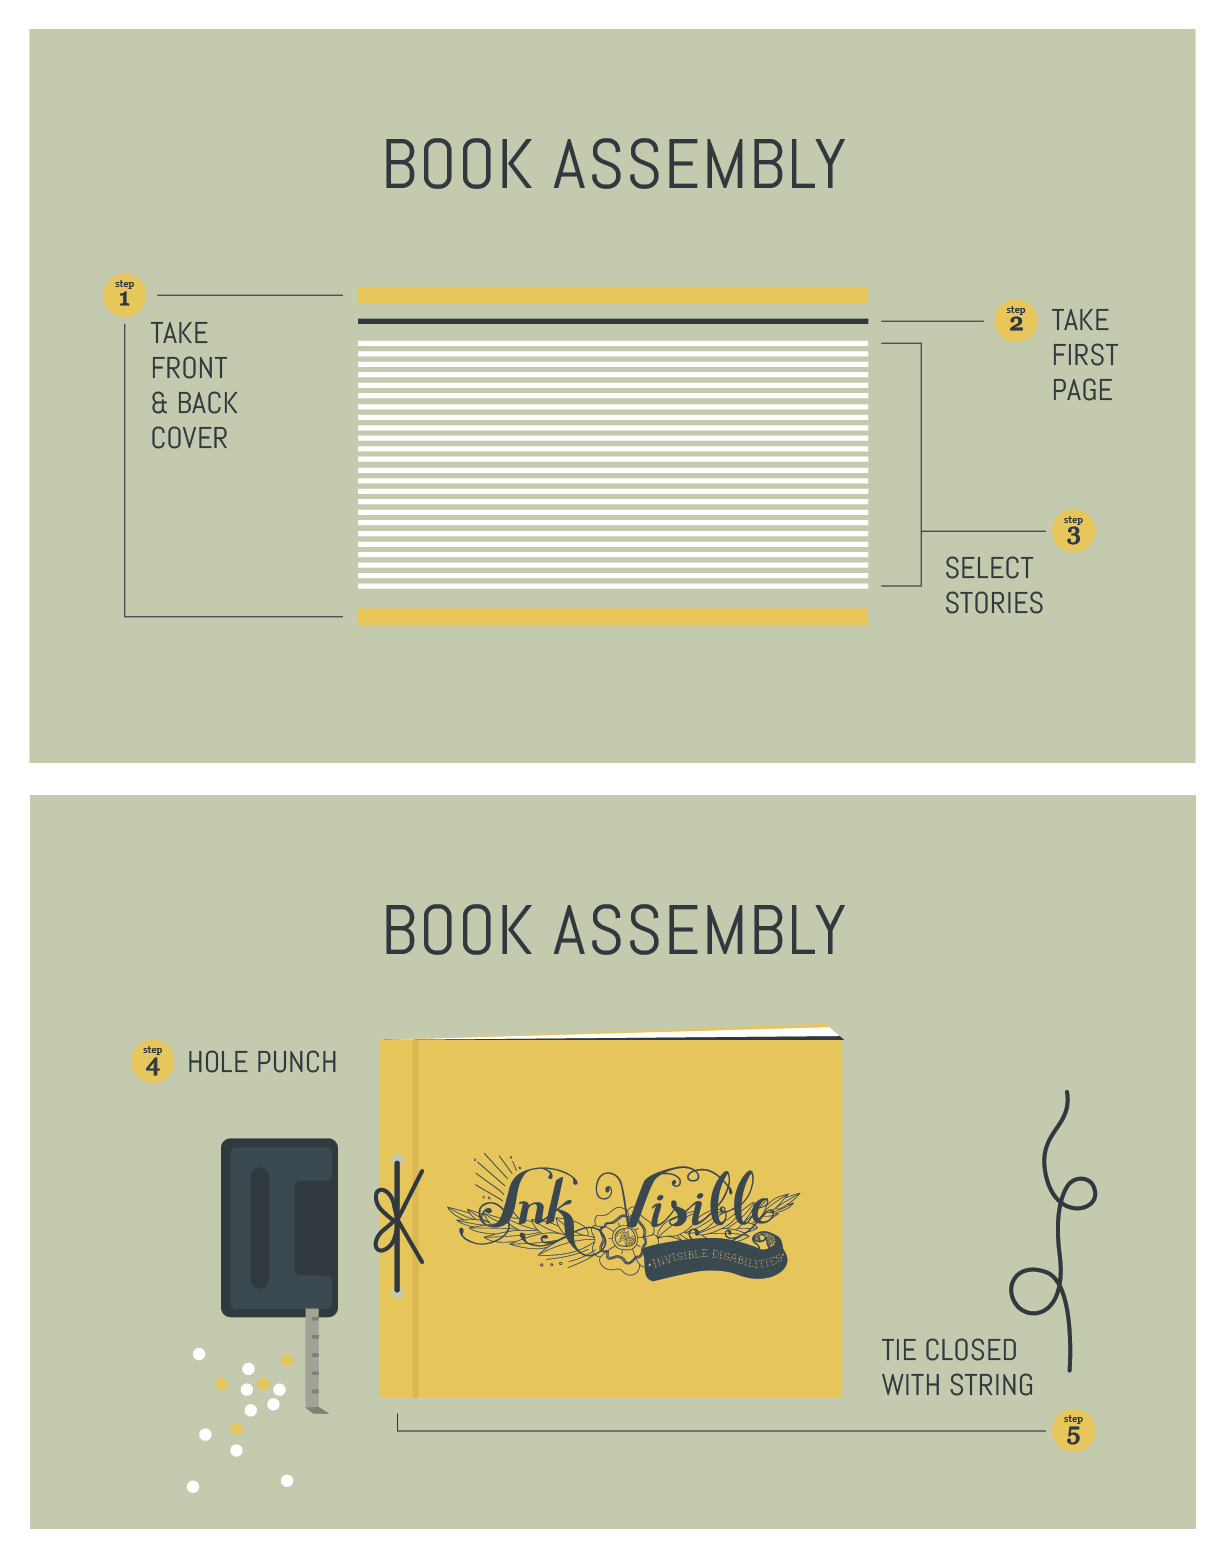 Event Participation: Create personal book with assembly instructions